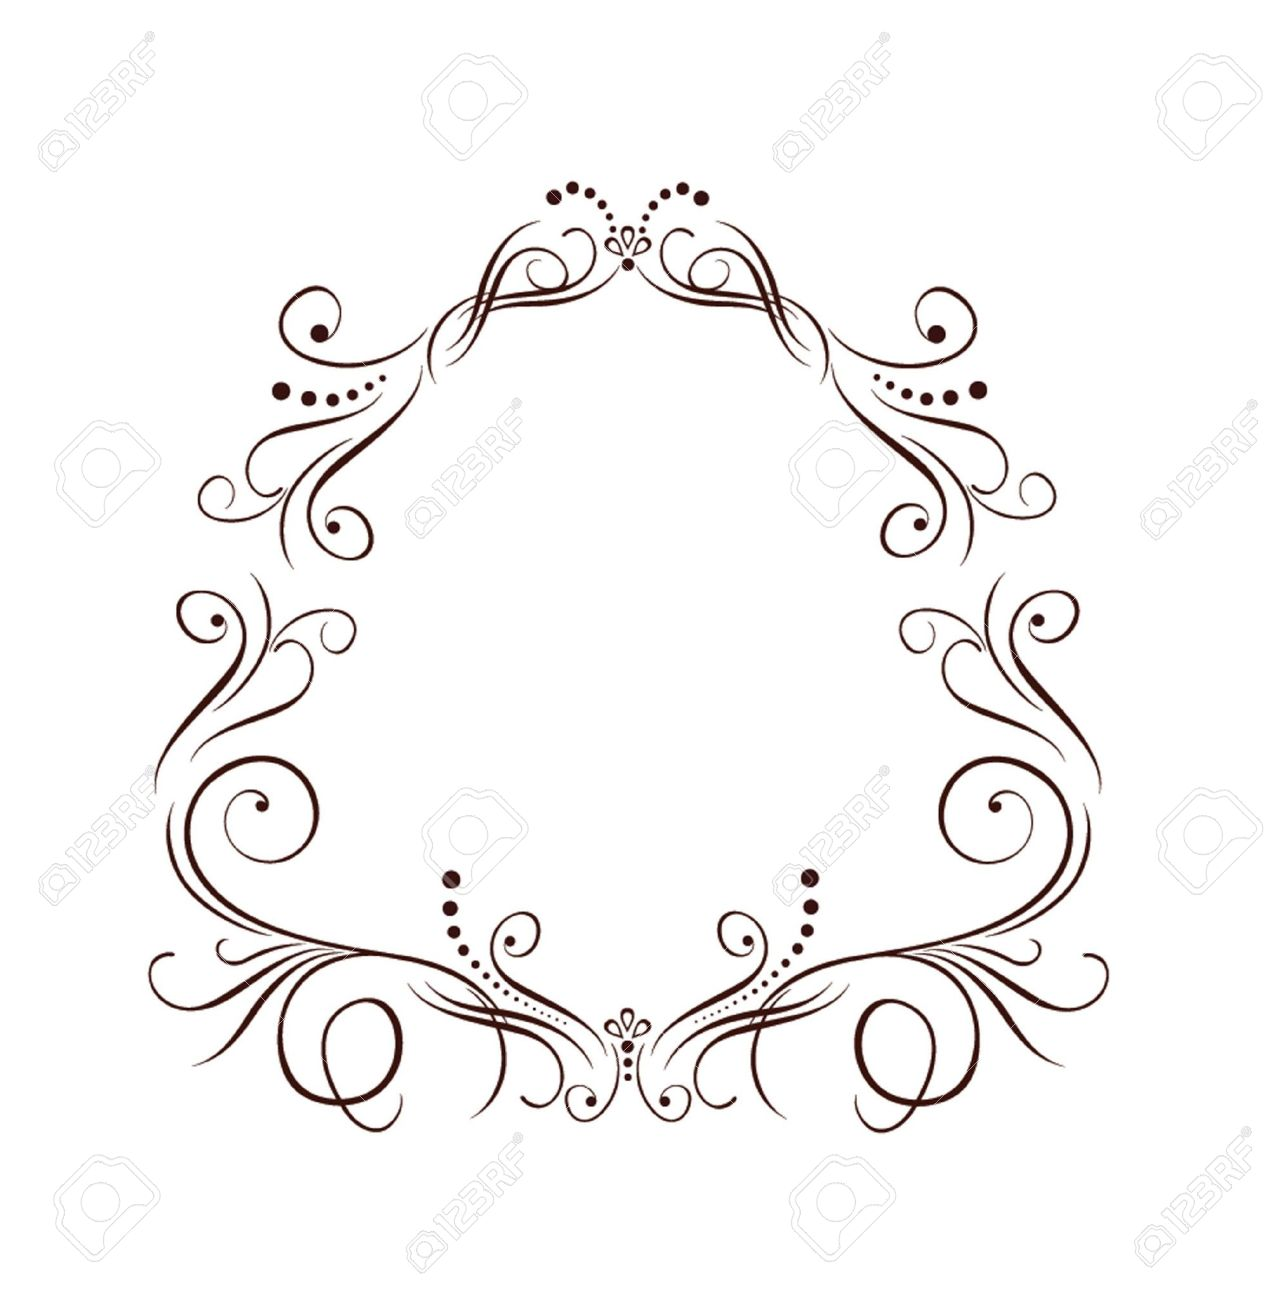 Wedding Border Royalty Free Cliparts, Vectors, And Stock ...